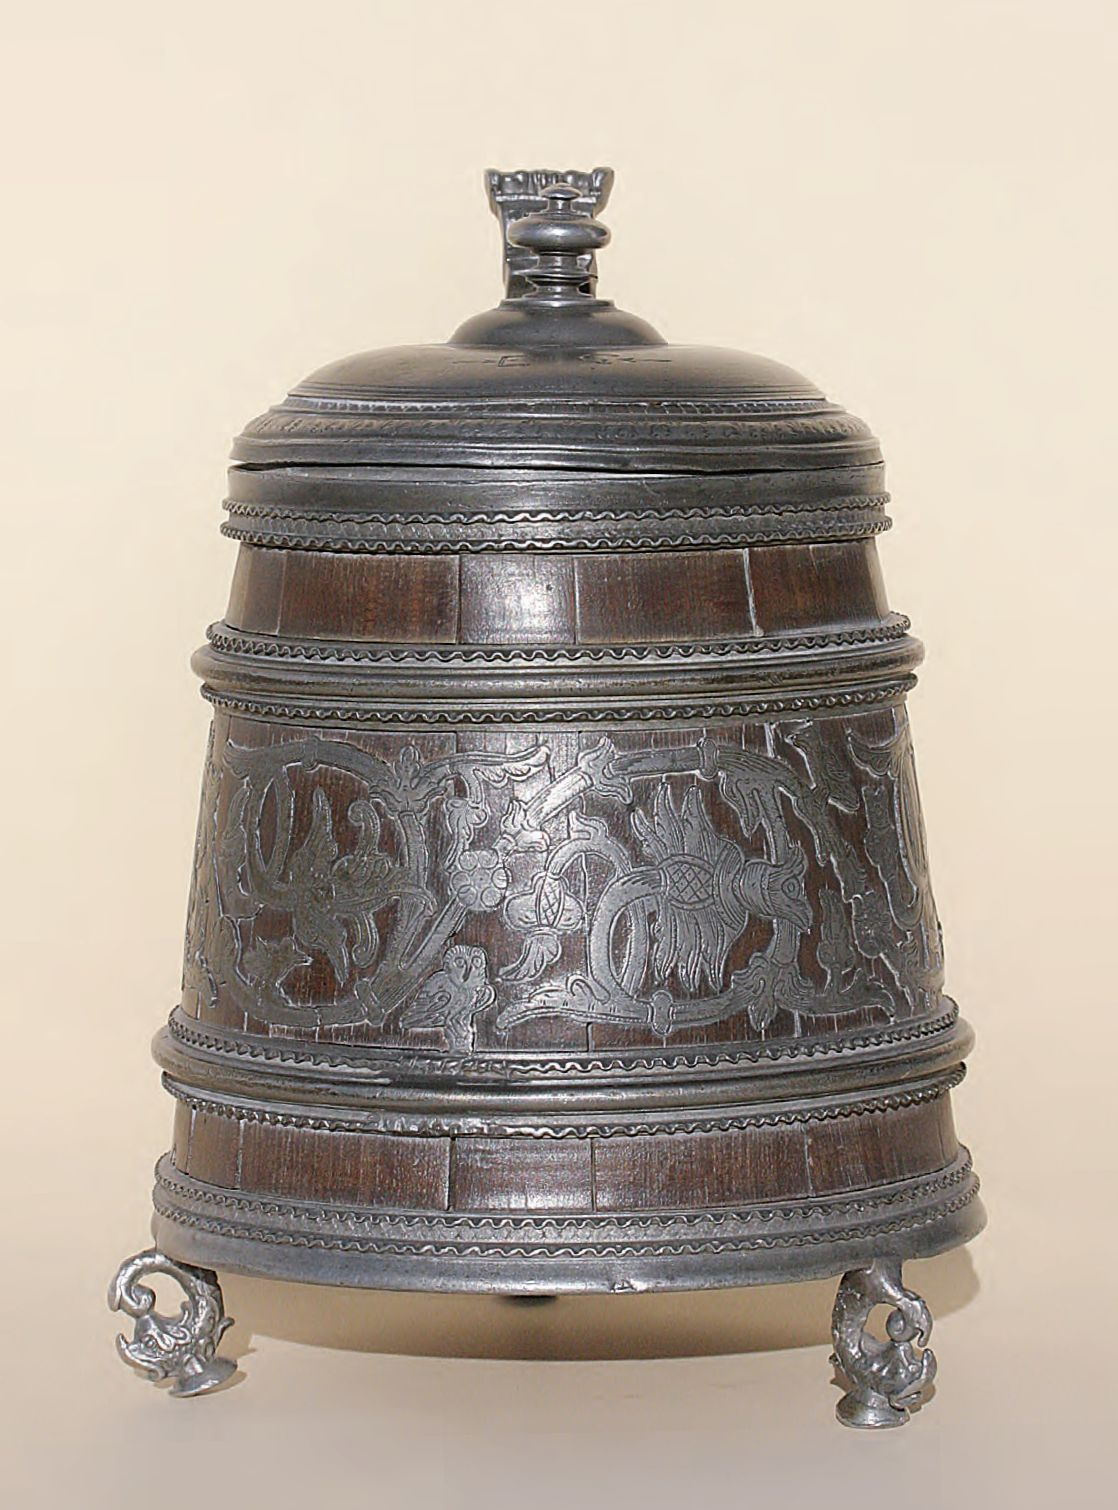 Early rare 17th century Thueringen Daubenkrug Tankard Pewter Wood ca. 1650